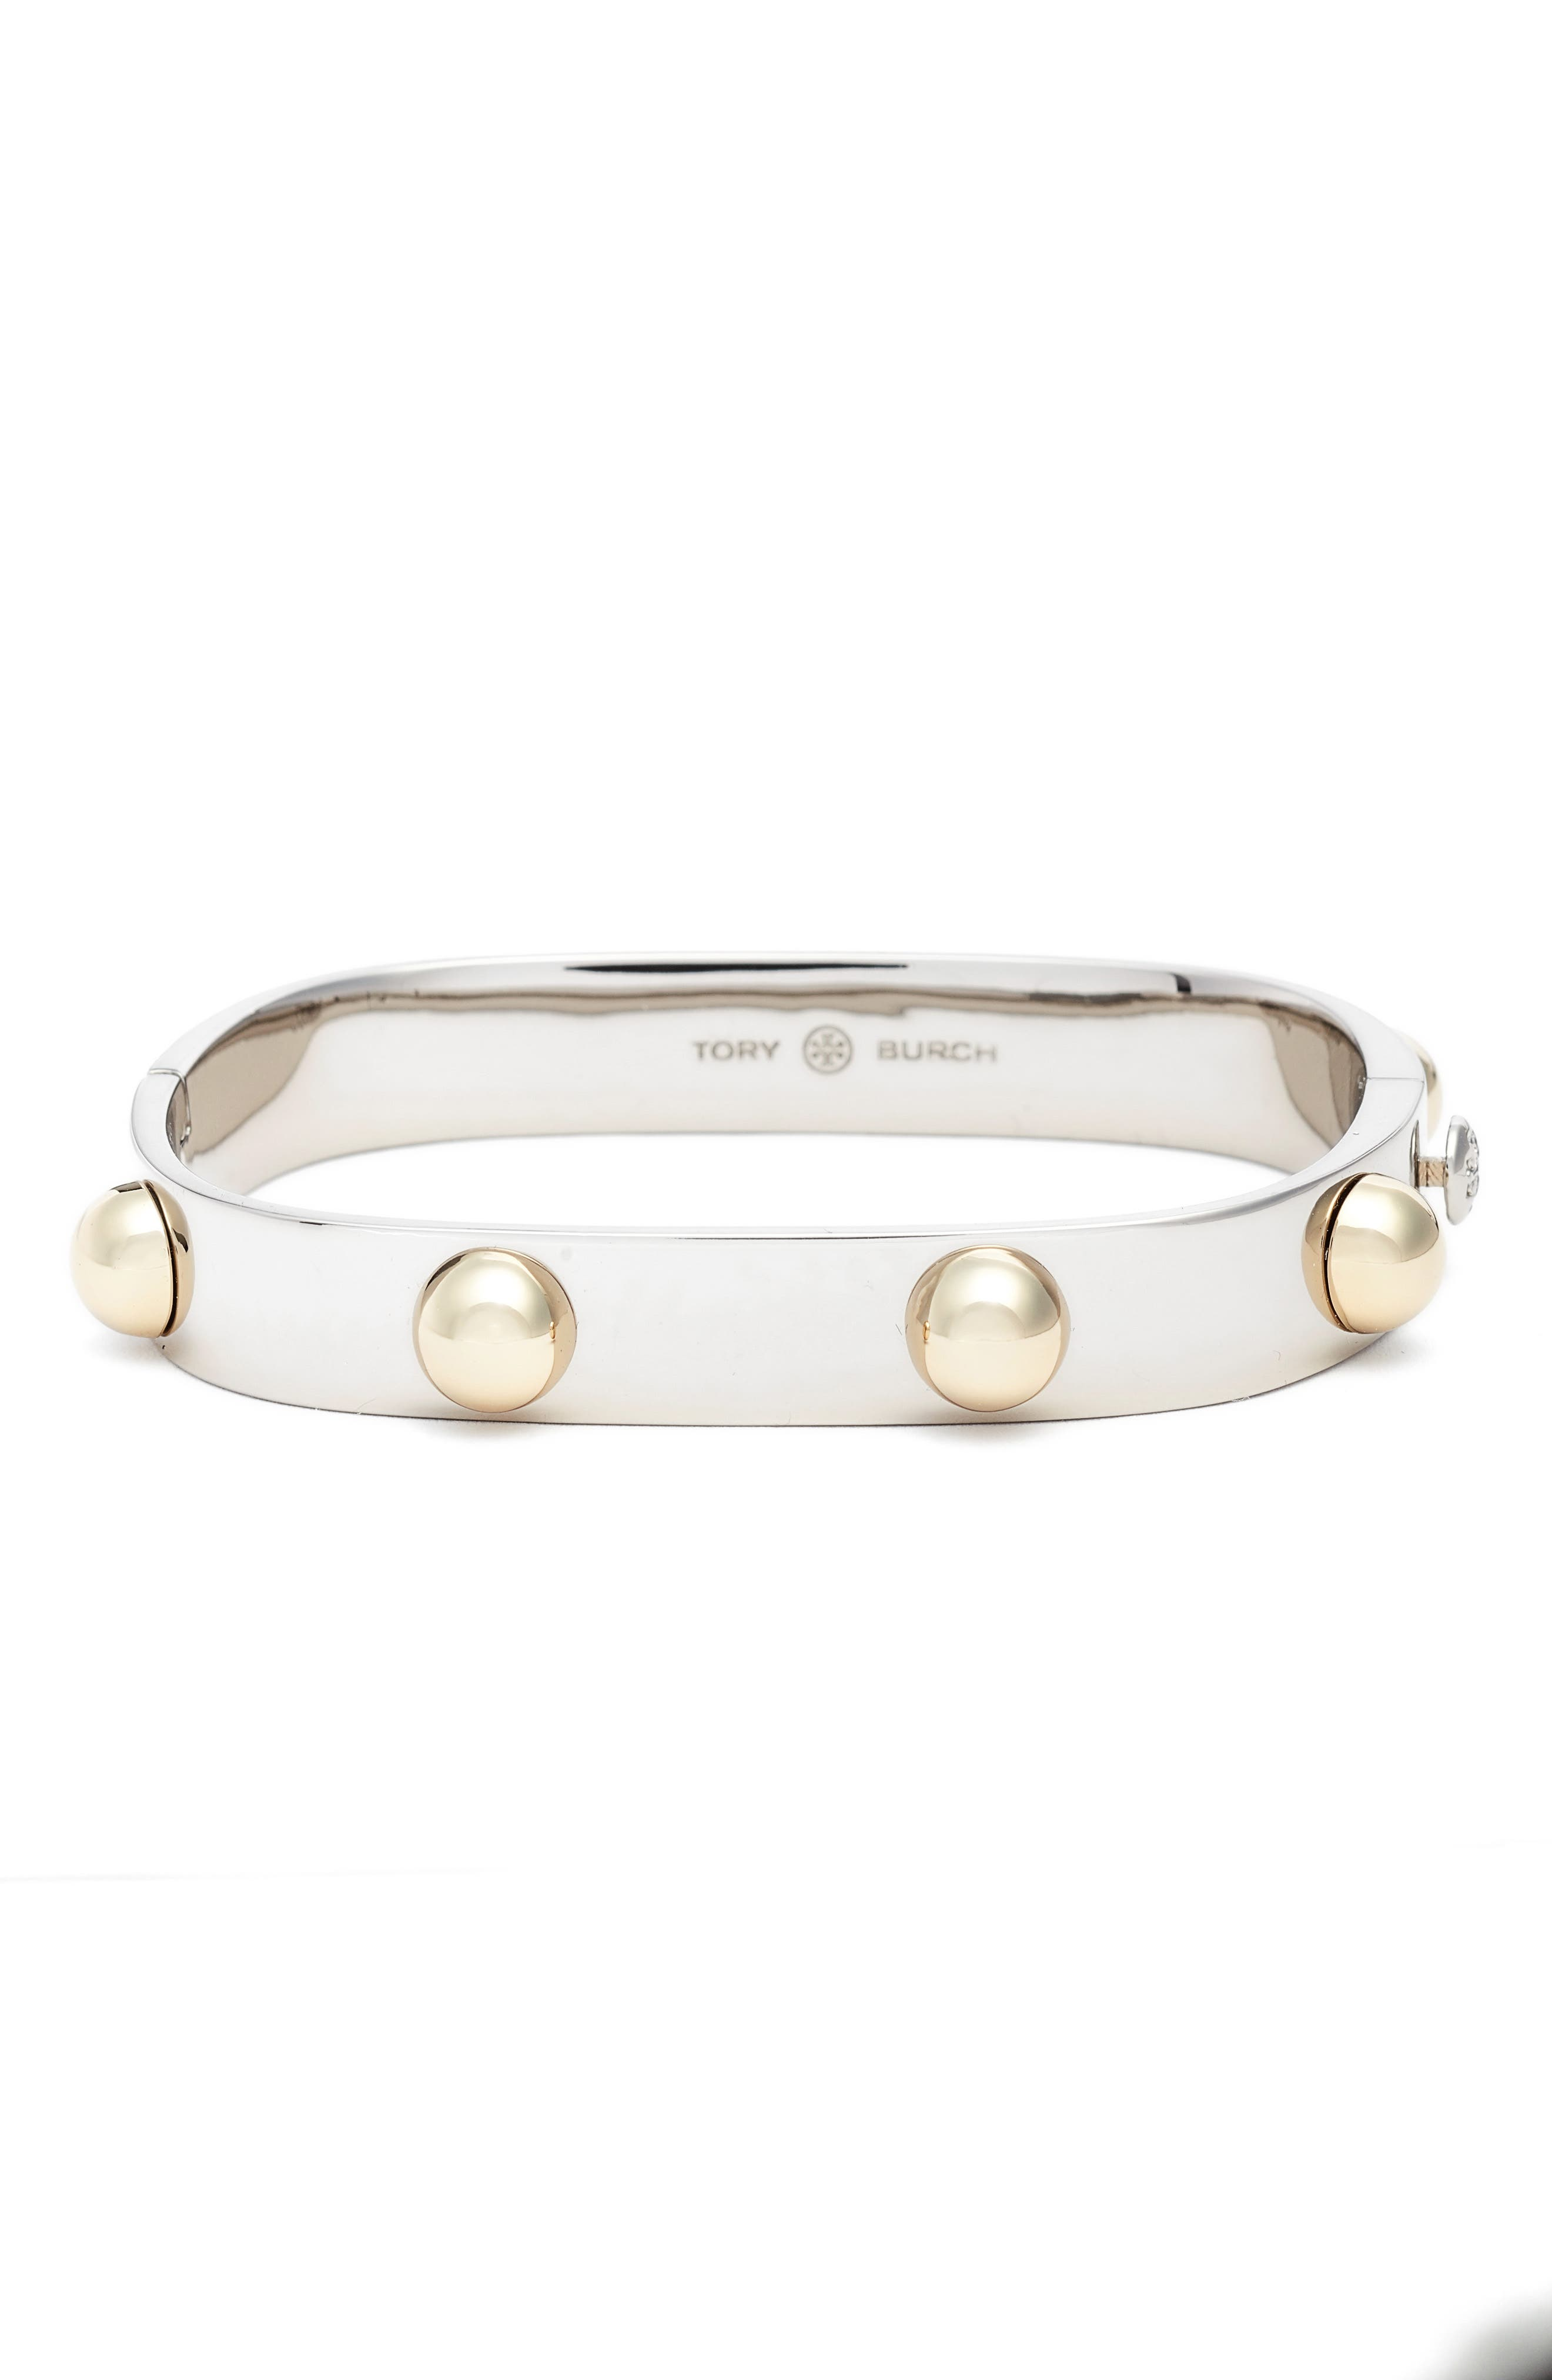 Main Image - Tory Burch Stacked Studded Cuff Bracelet